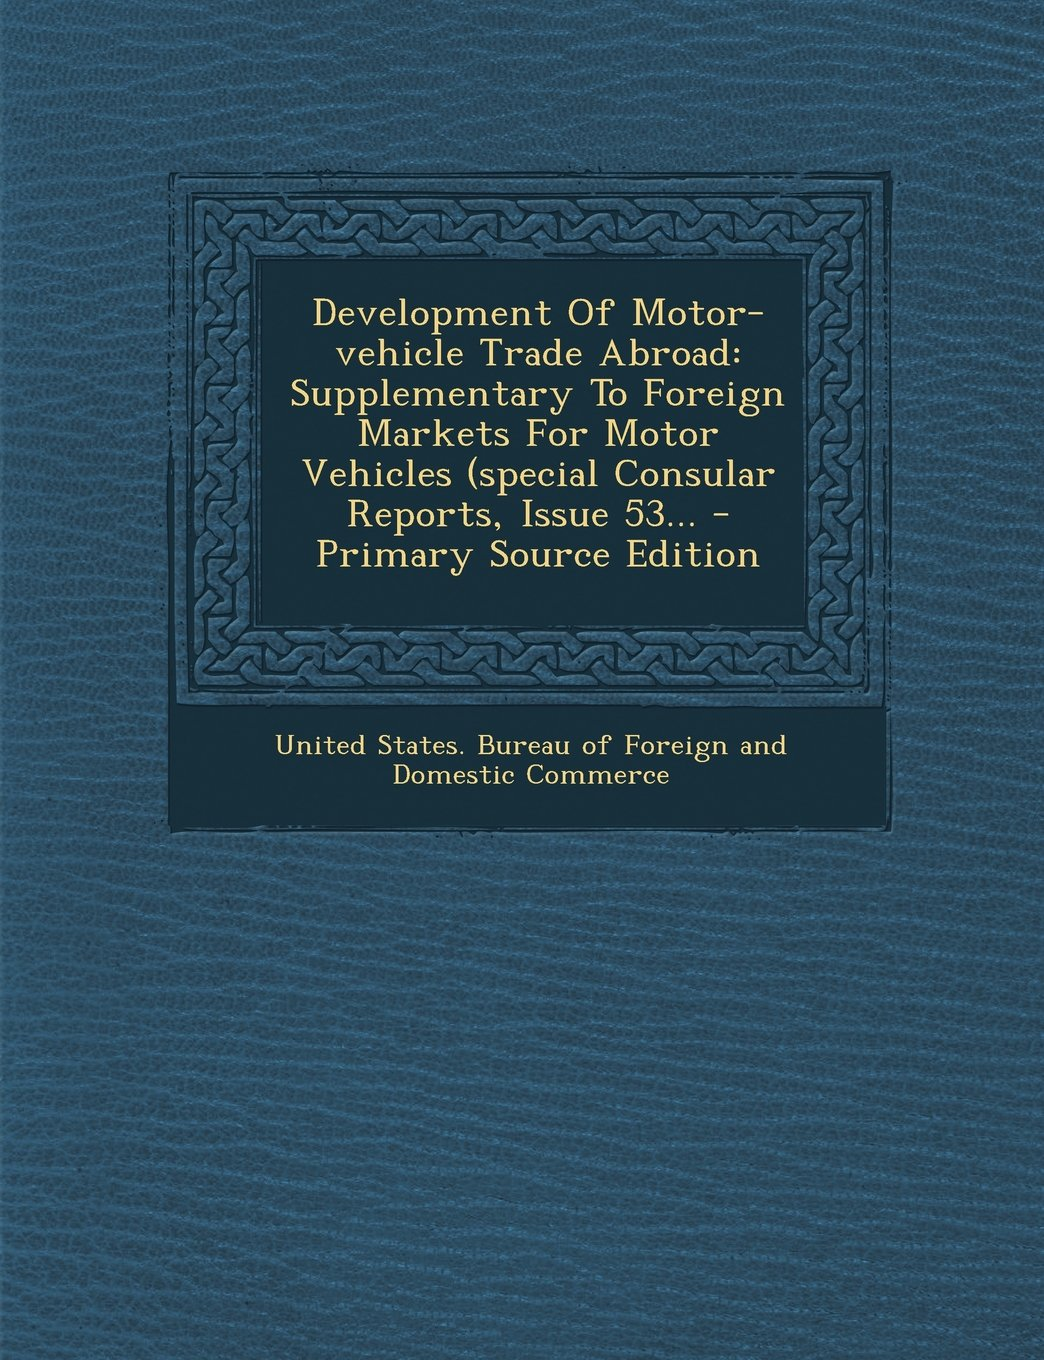 Development of Motor-Vehicle Trade Abroad: Supplementary to Foreign Markets for Motor Vehicles (Special Consular Reports, Issue 53... - Primary Source ePub fb2 ebook